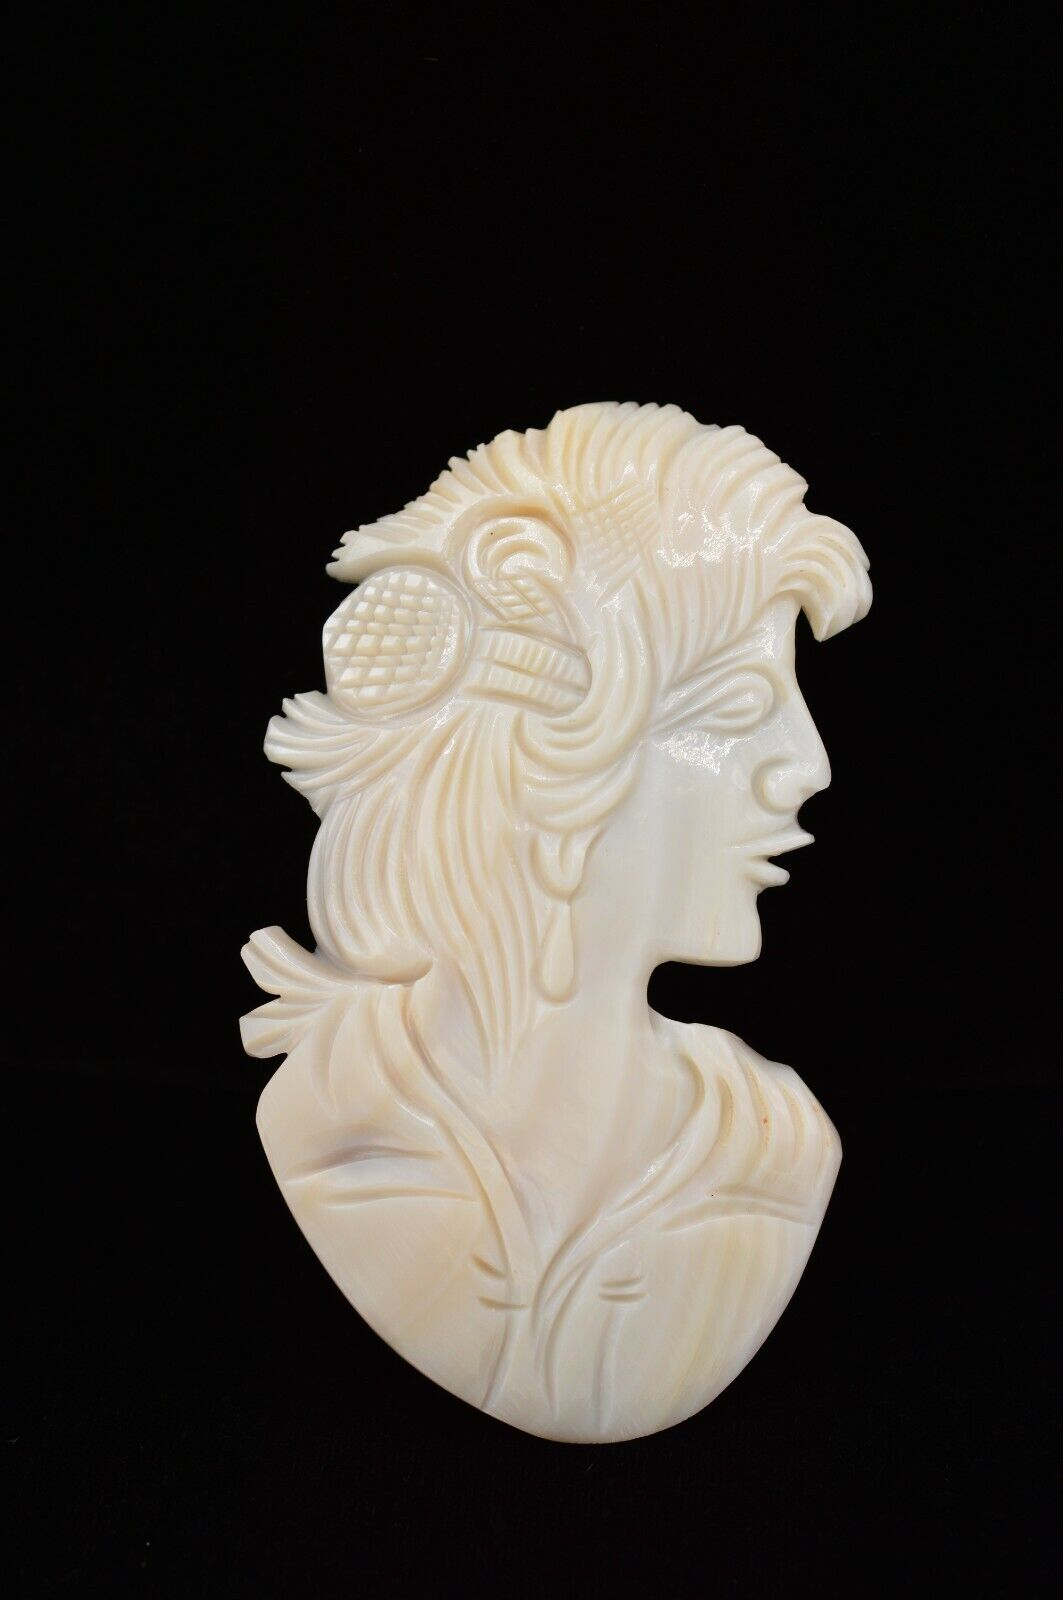 BARI USA True Vintage Belt Buckle Abalone Shell Carved Woman Mother Pearl 80s 9B